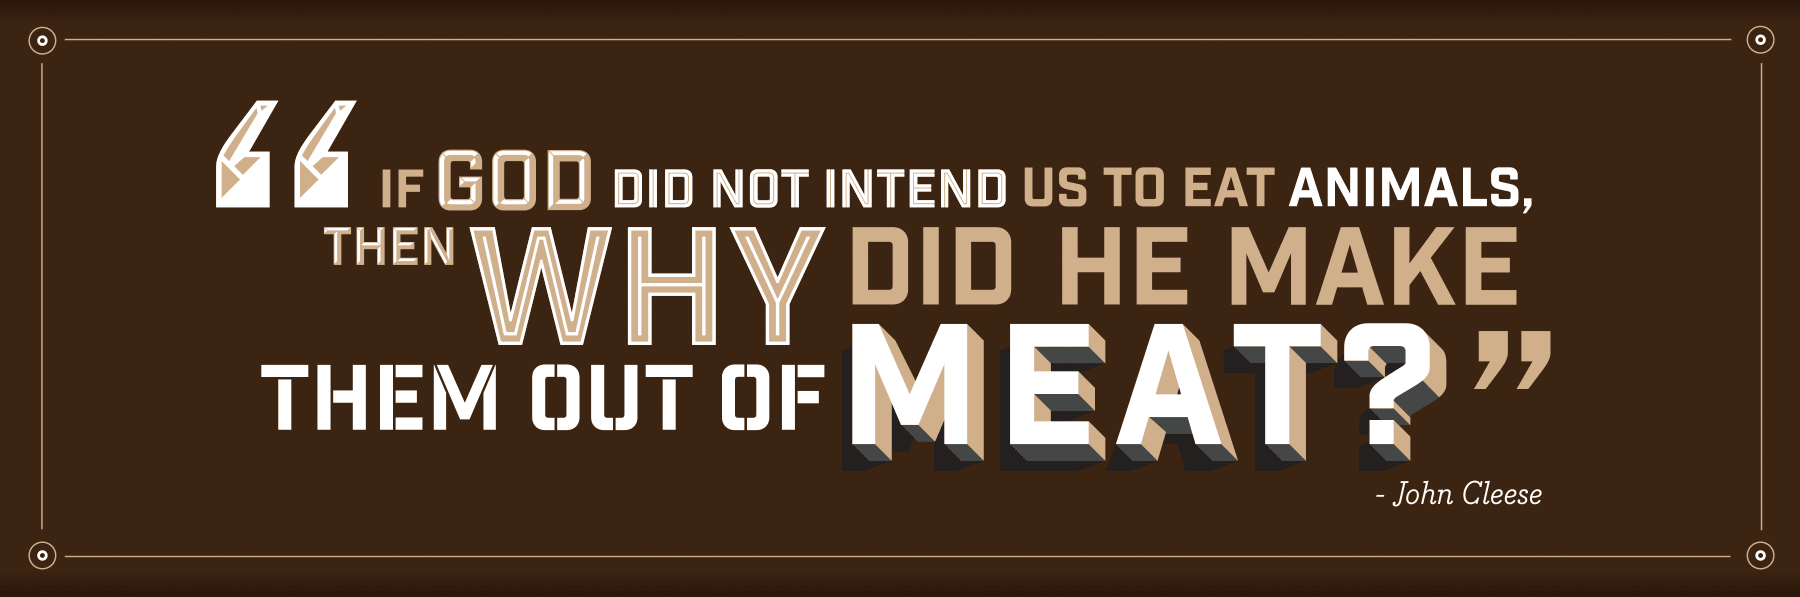 If god did not intend us to eat animals, then why did he make them out of meat?